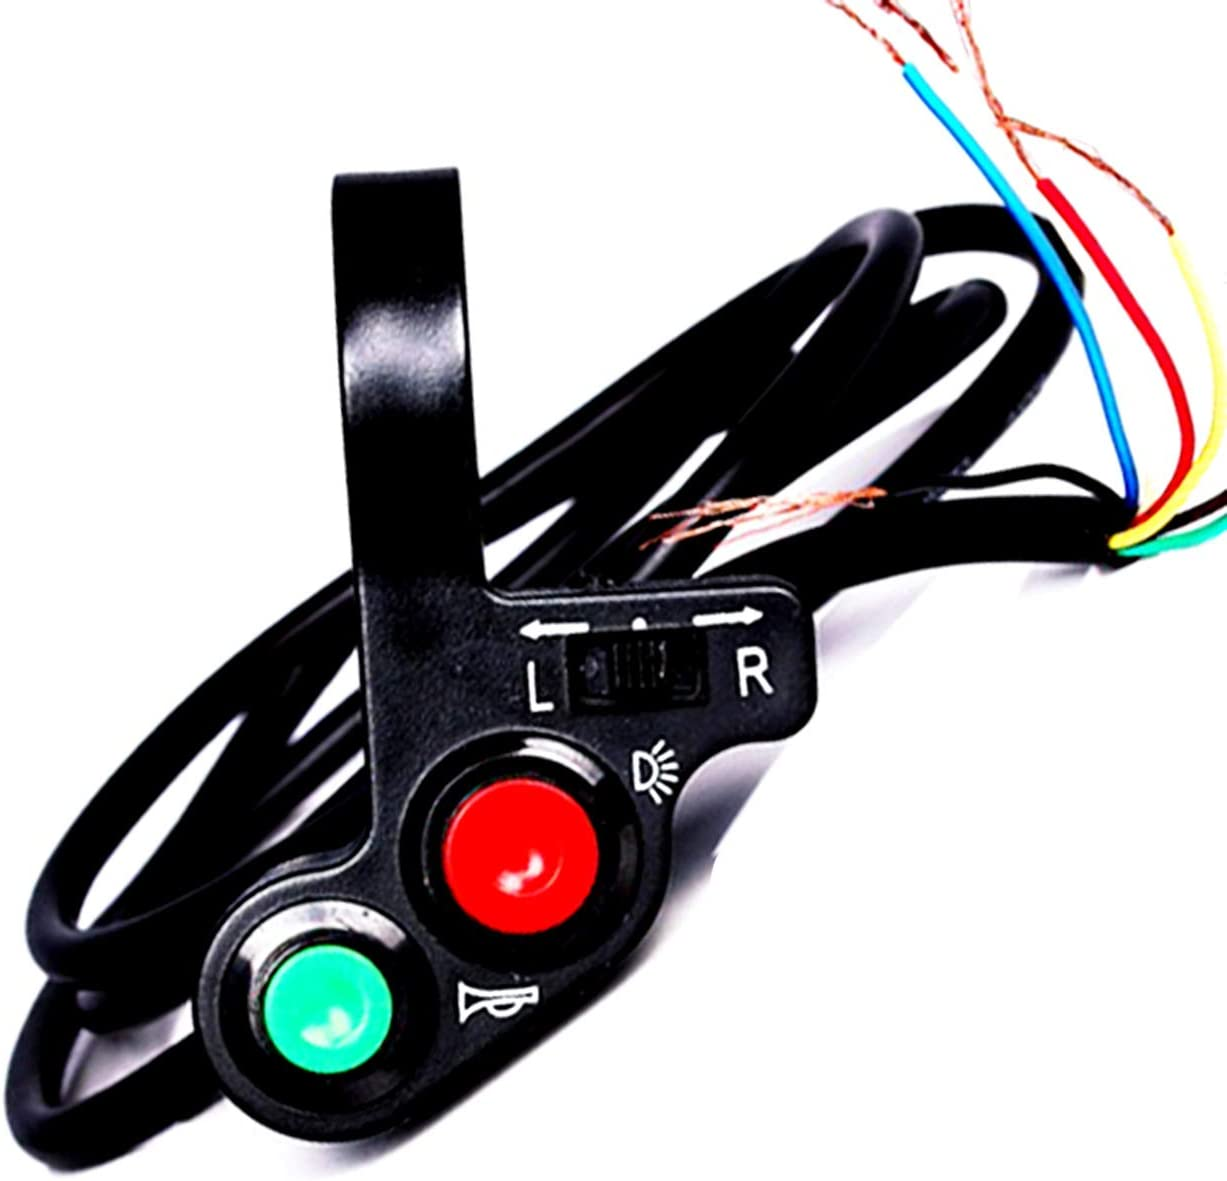 Yibid Motorcycle Turn Signal Light Horn 12v DC Switch Offroad On//Off Multi-function for 7//8 Handlebar Dual Sport Dirt Bike Scooter Electrombile Modify Spotlight Cruiser Motocross Electrical Moped